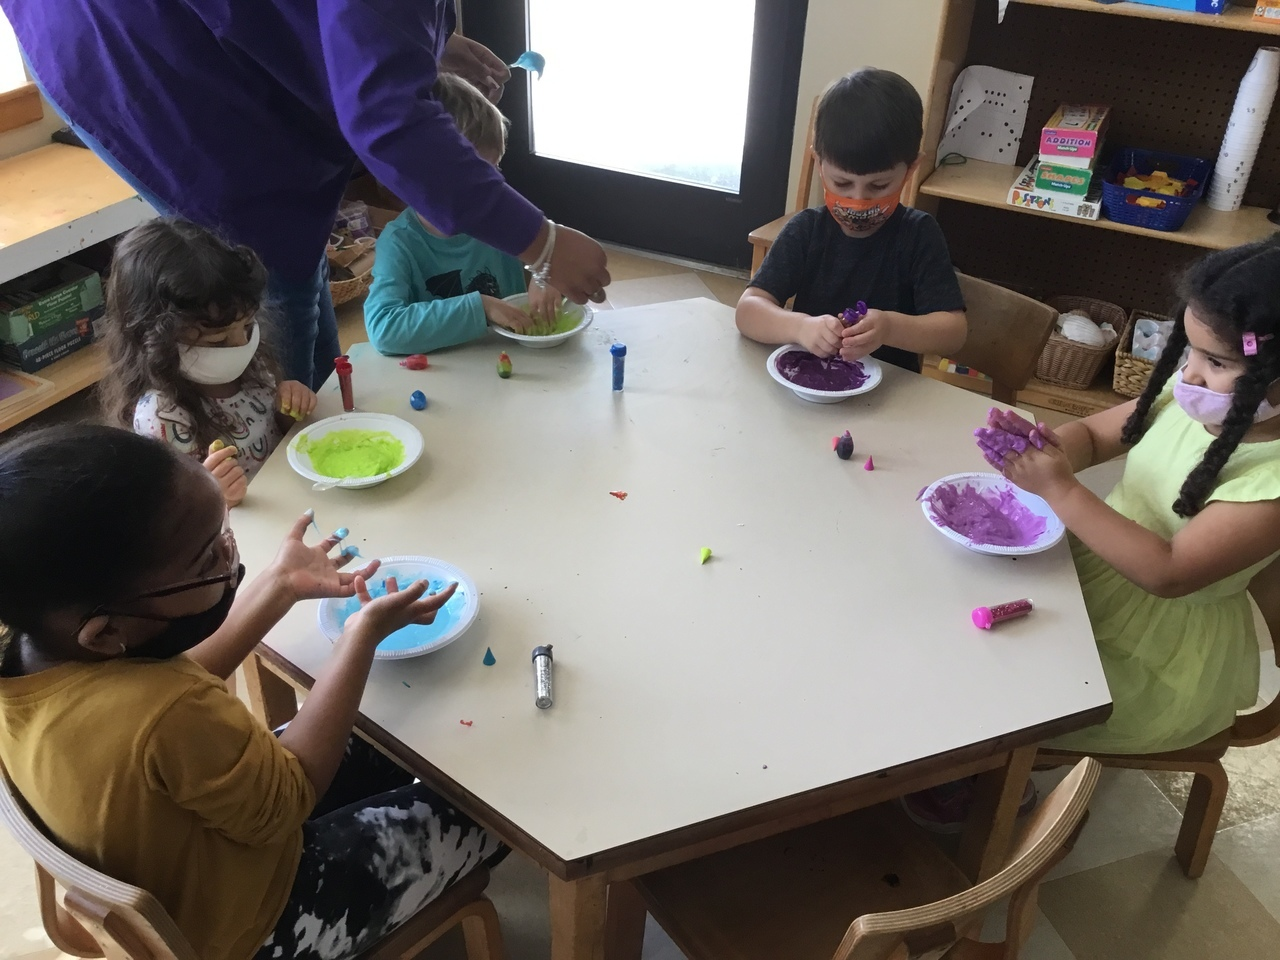 children painting in class room